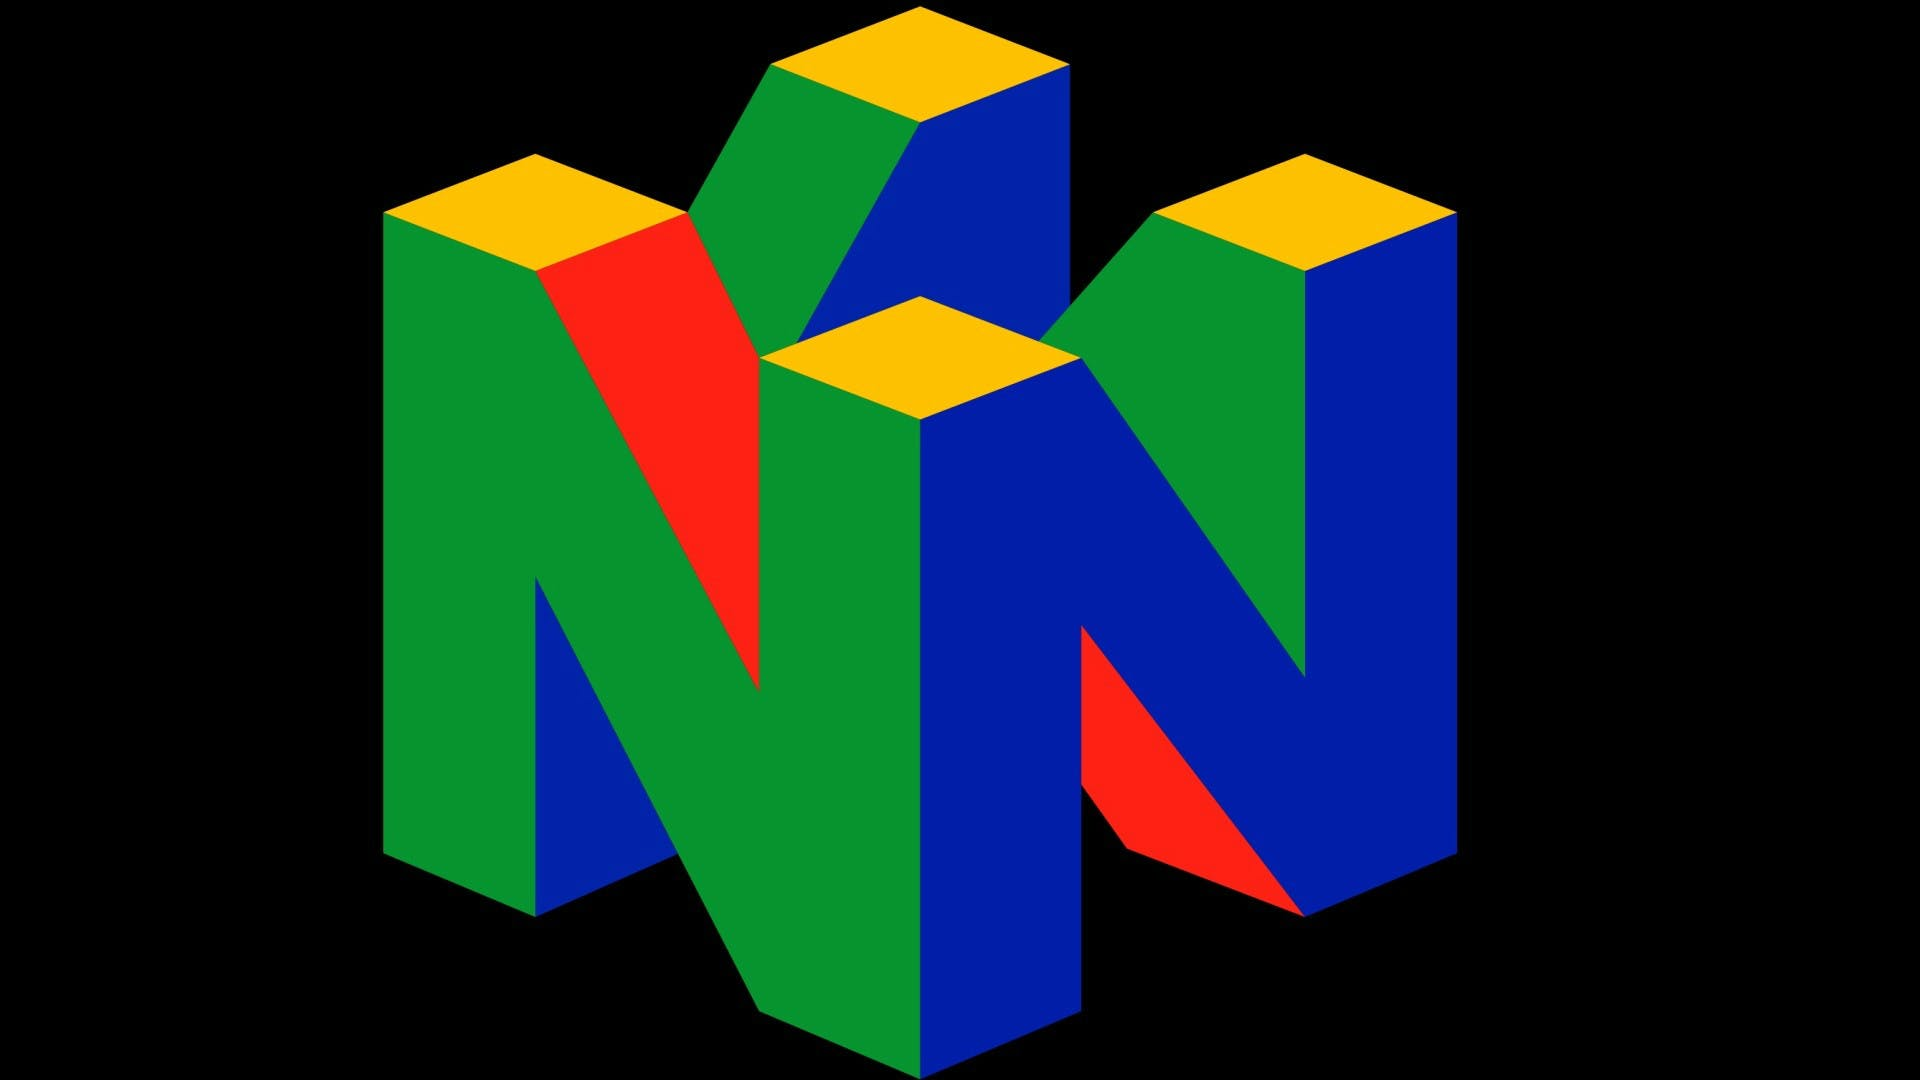 The Nerd Stash Show #8.5 - We List Our Favorite Nintendo 64 and PS1 Games